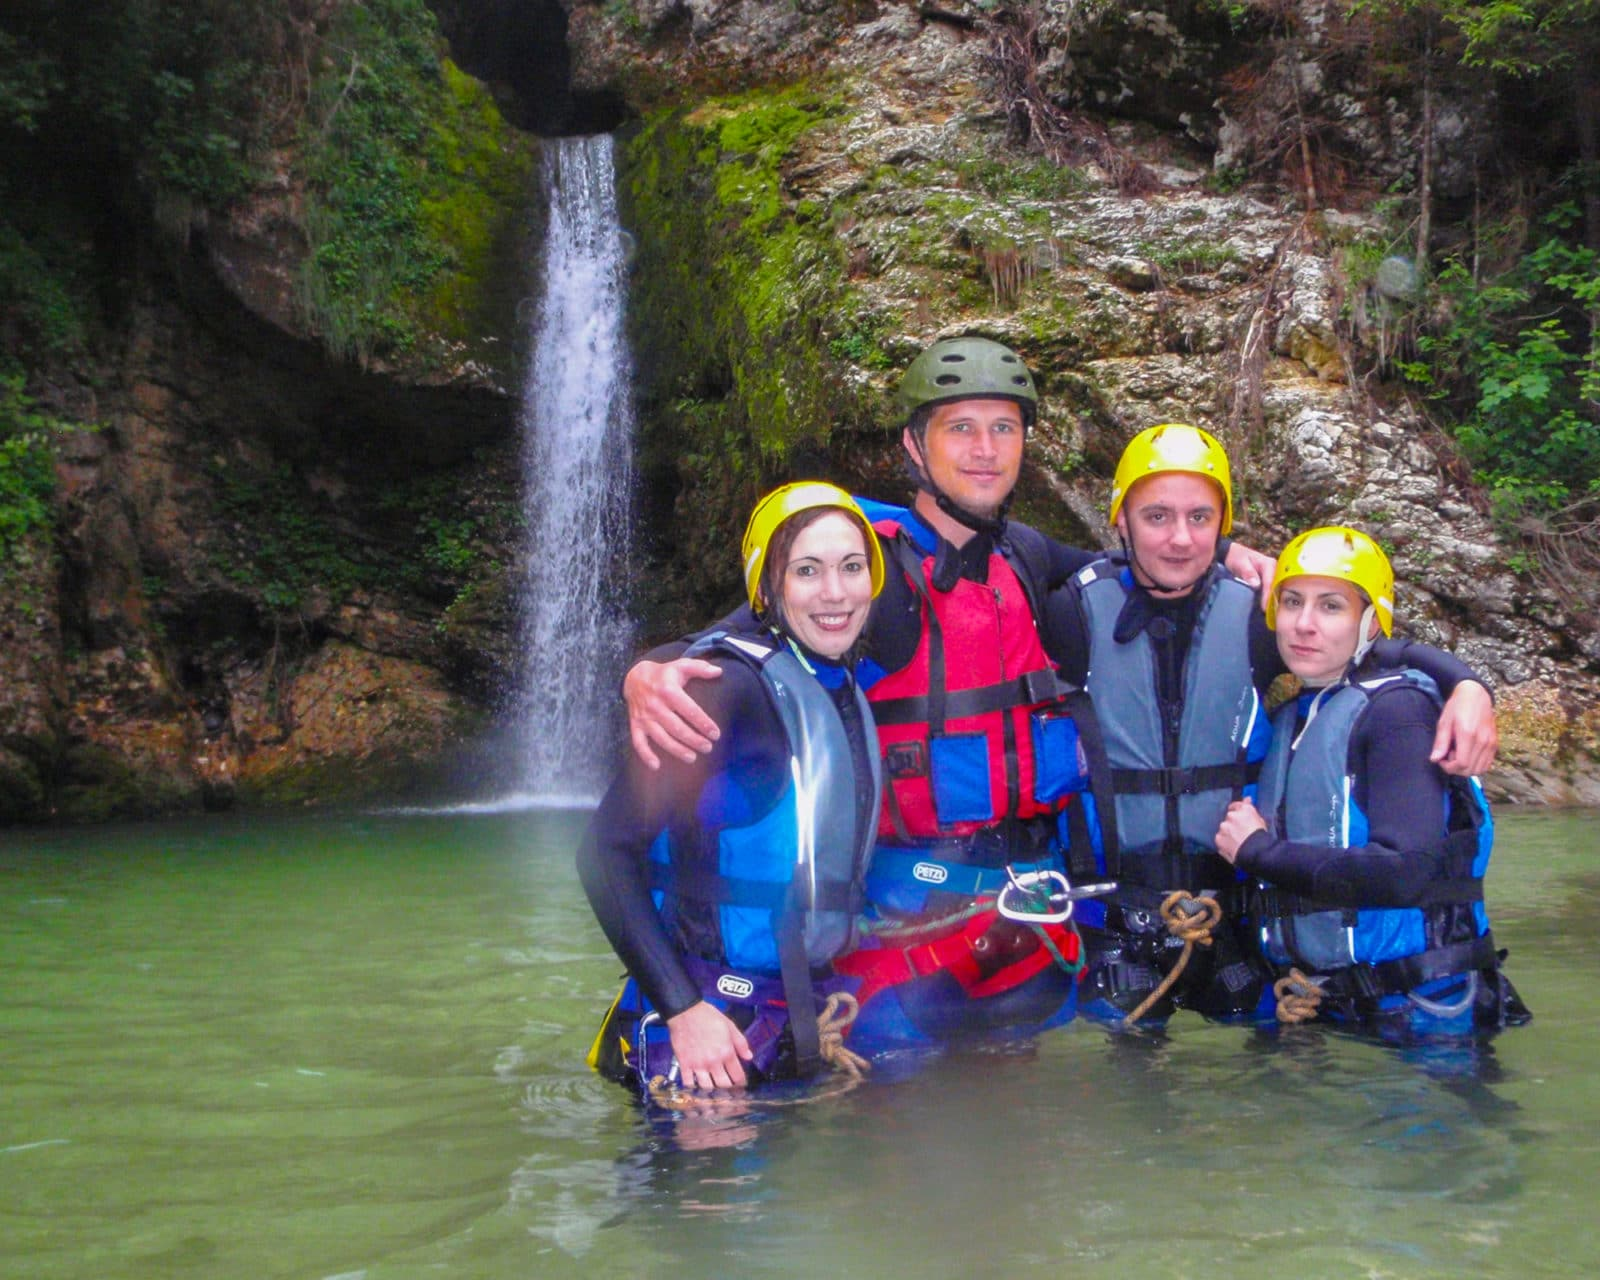 Canyoning Bled is a fun and exciting adrenaline activity for families and students